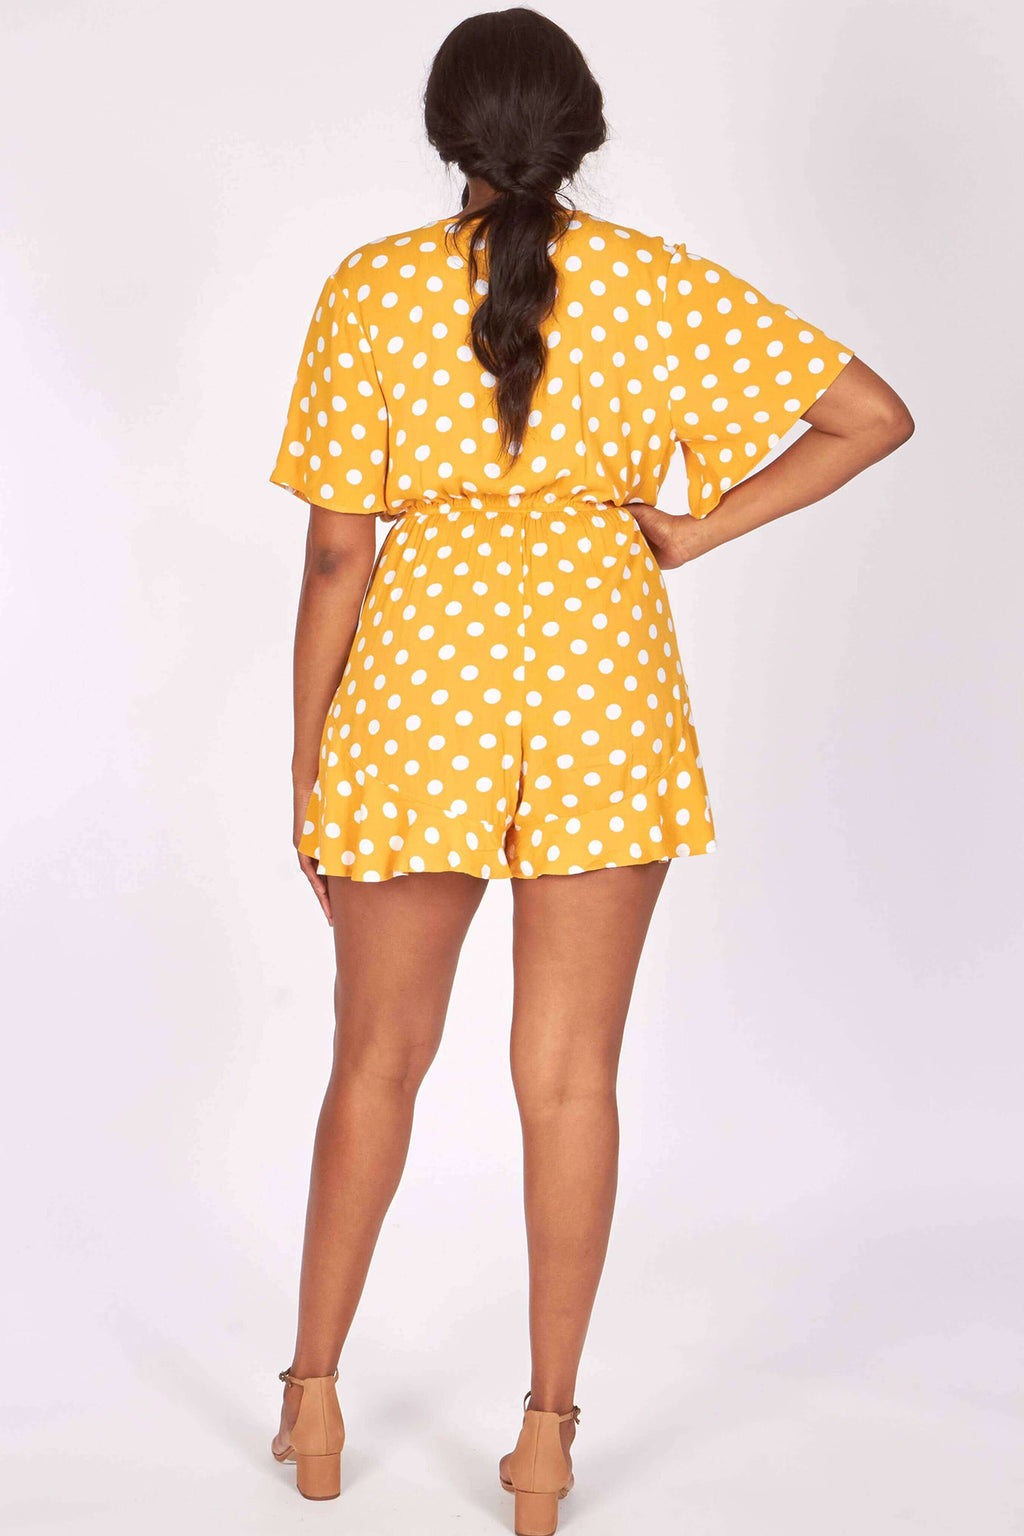 plus - Gold Polka Dot